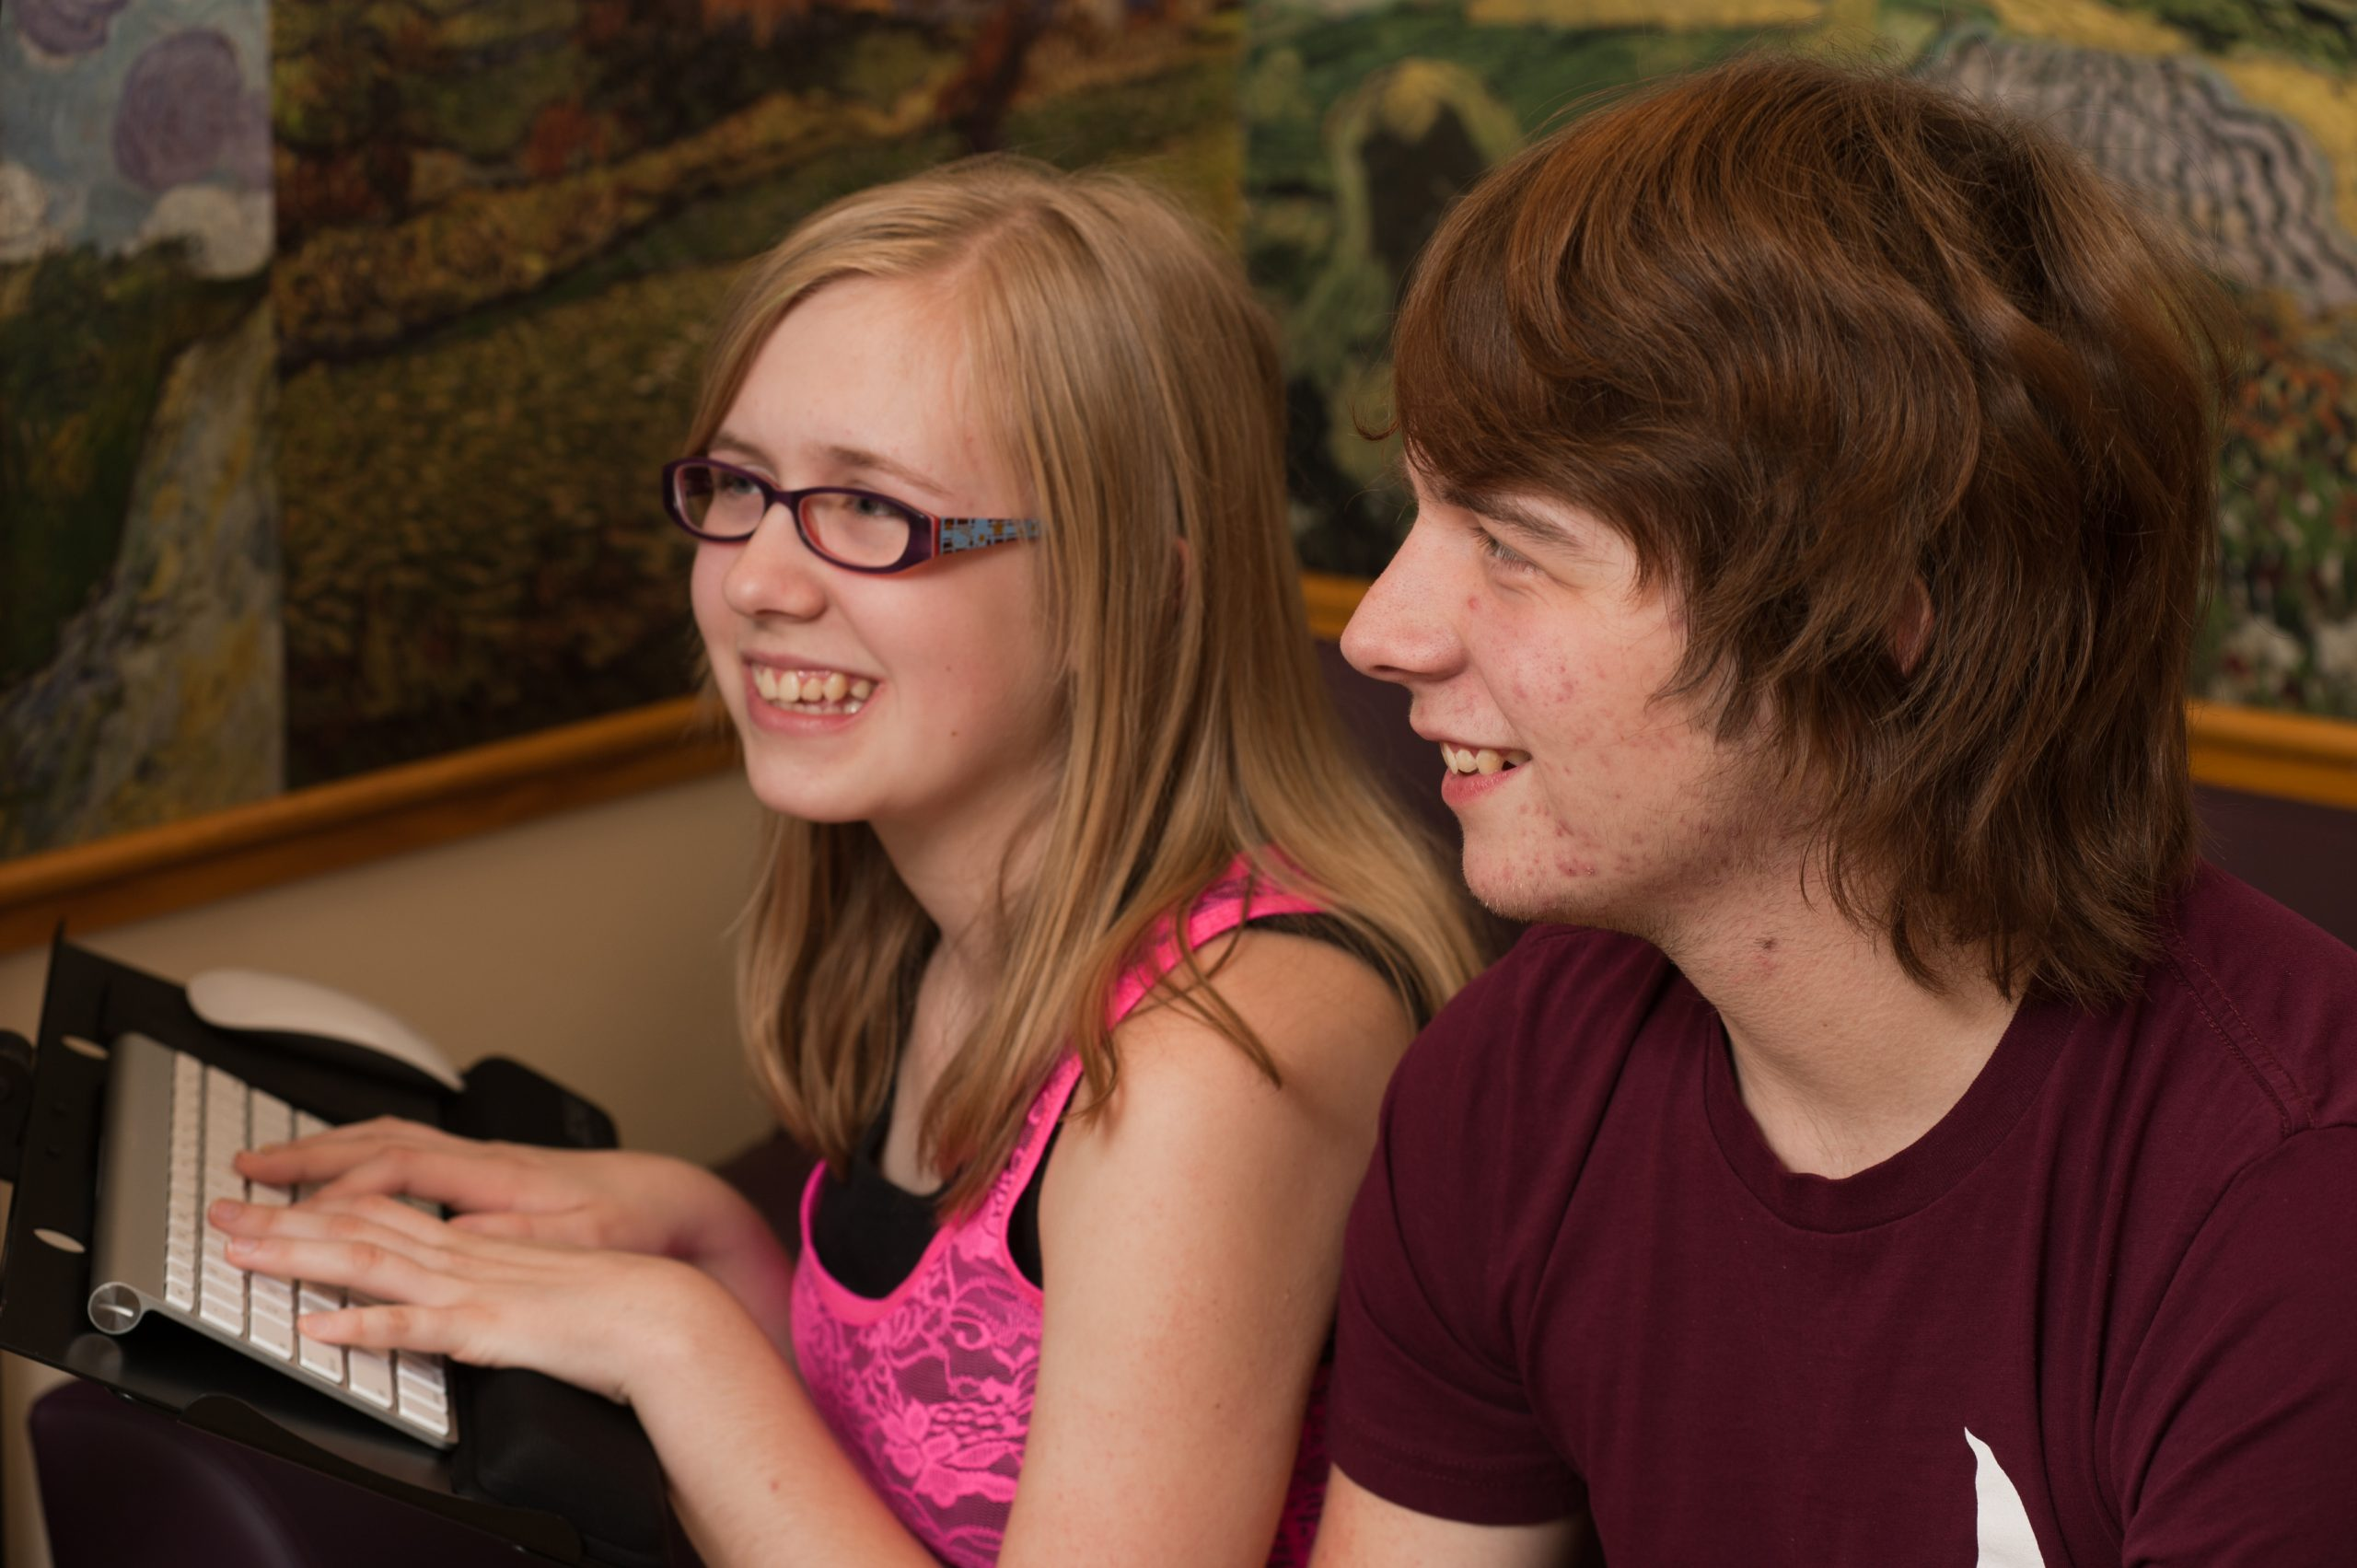 Kayla and Cody, Siblings, on a computer in The Children